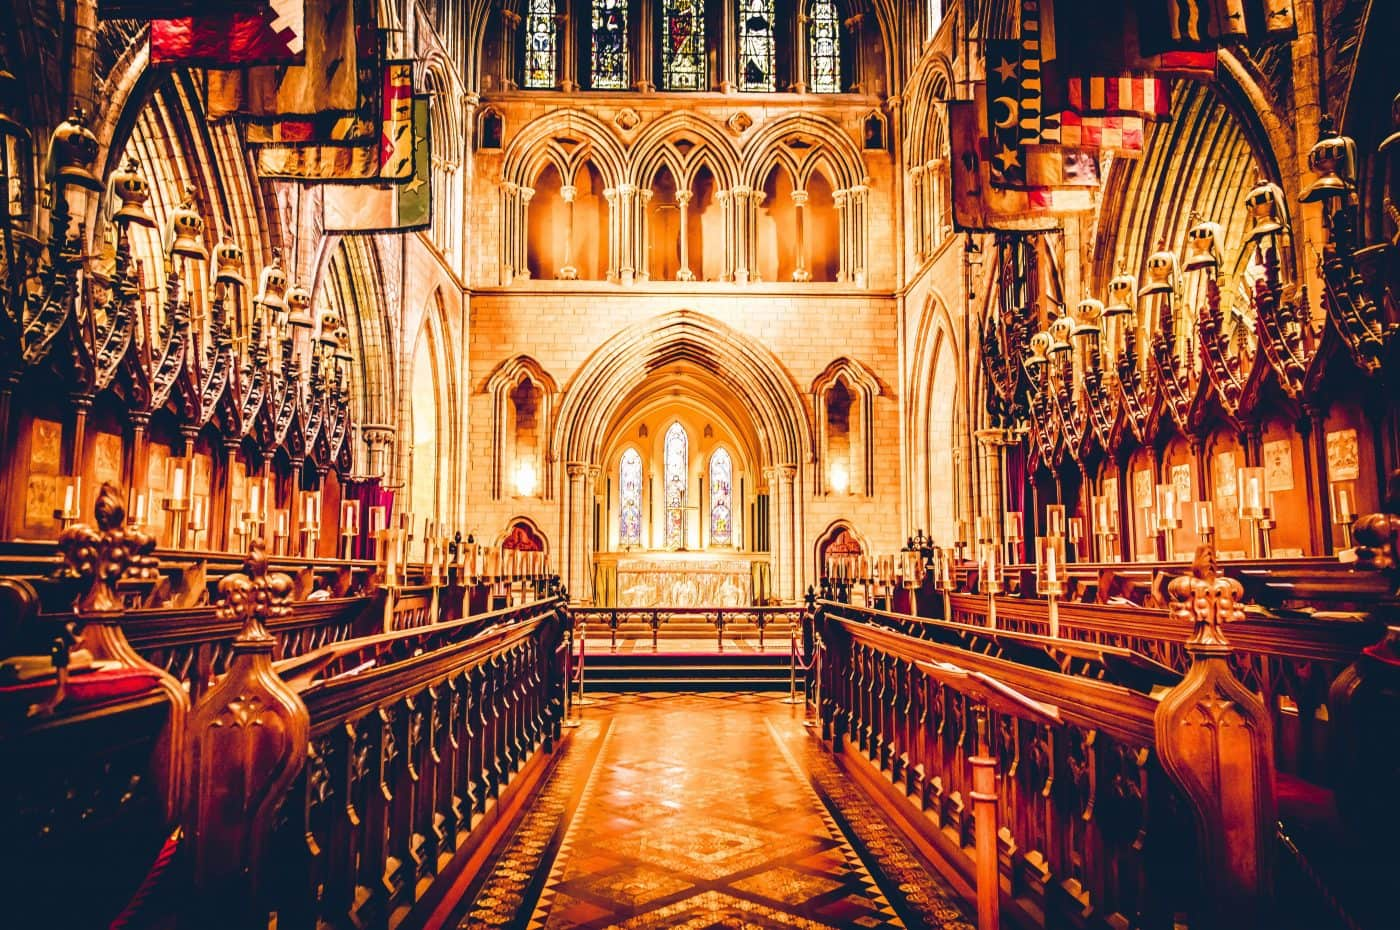 Choir at St. Patrick's Cathedral iN Dublin – Photo by Jaime Casap on Unsplash